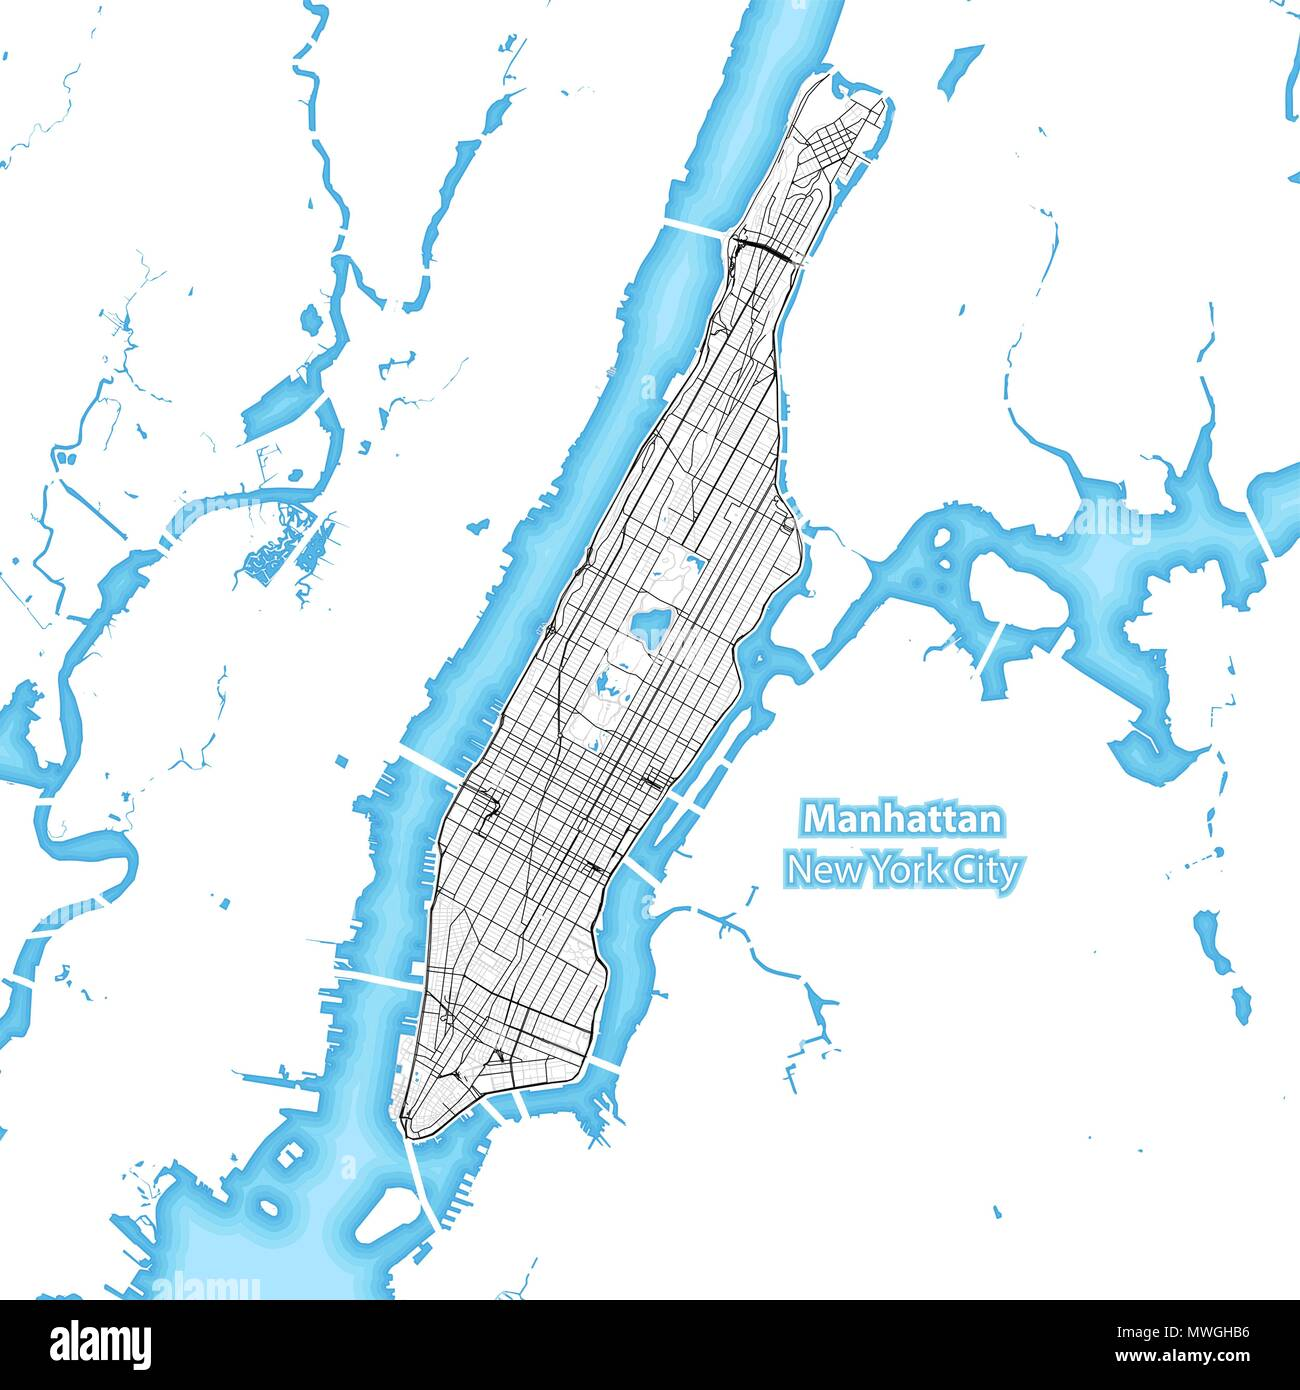 Map Of The Island Of Manhattan New York City Indonesia With The - Manhattan island map